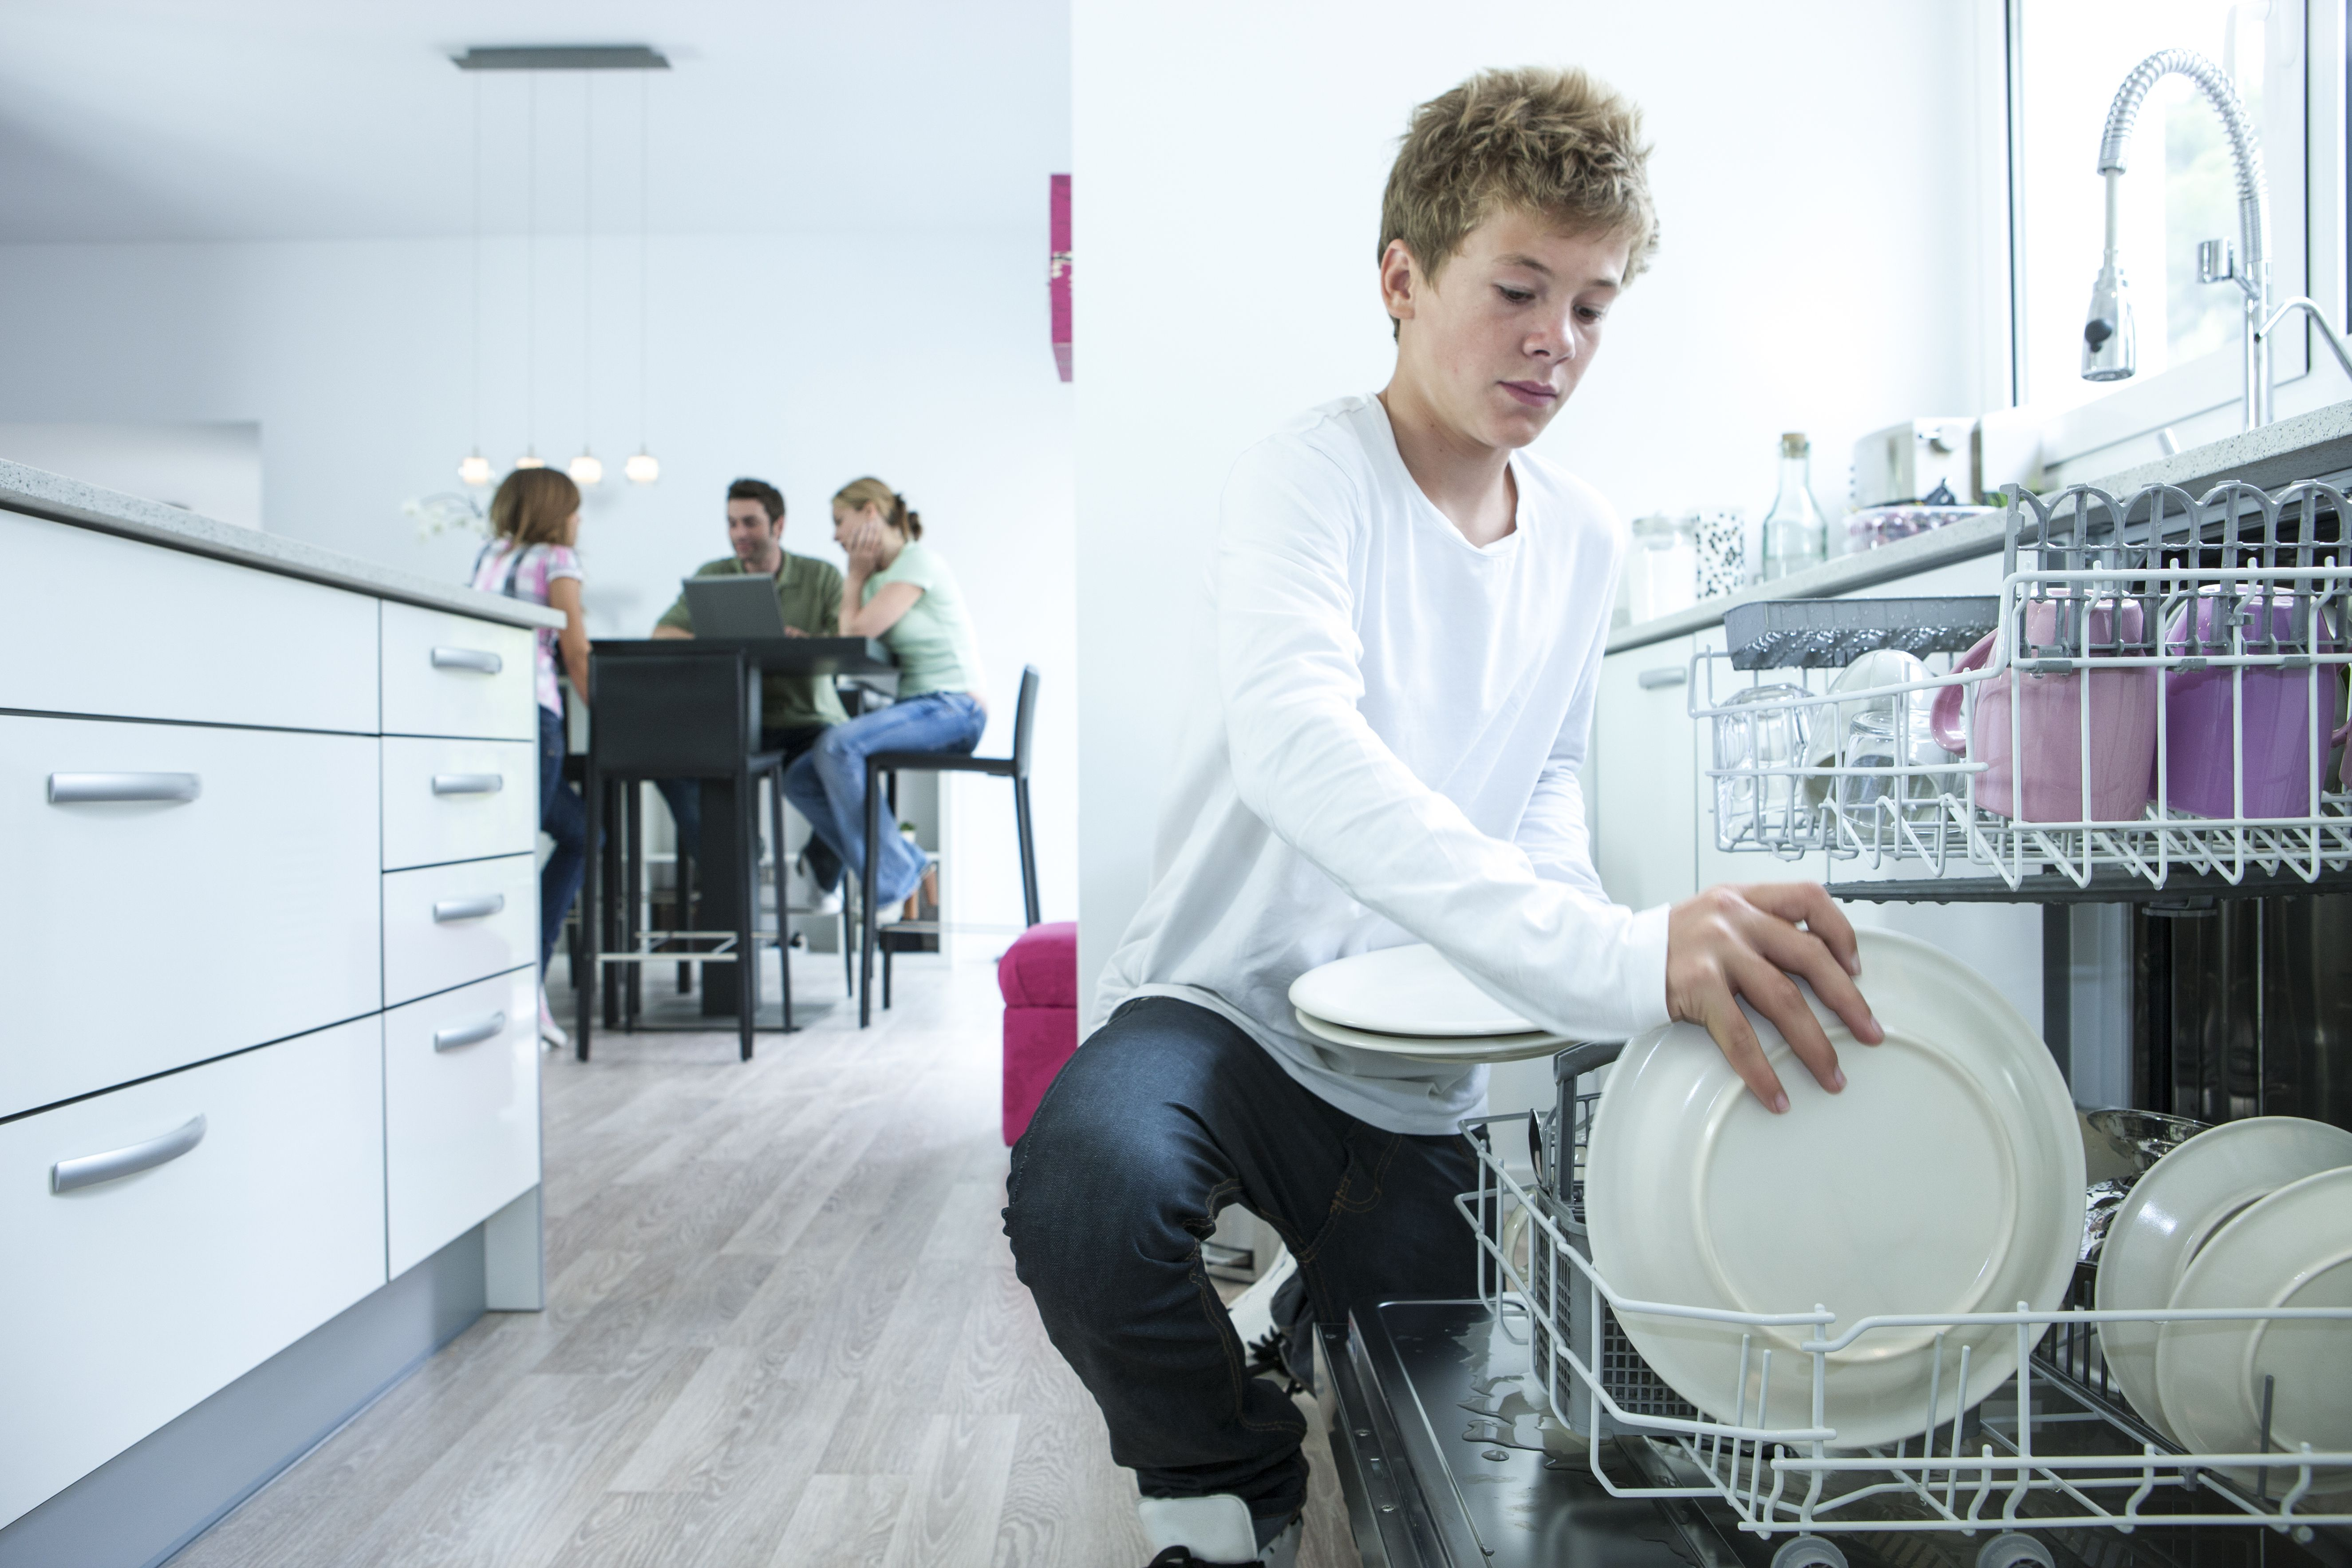 Teenage boy removing plates from dishwasher in kitchen